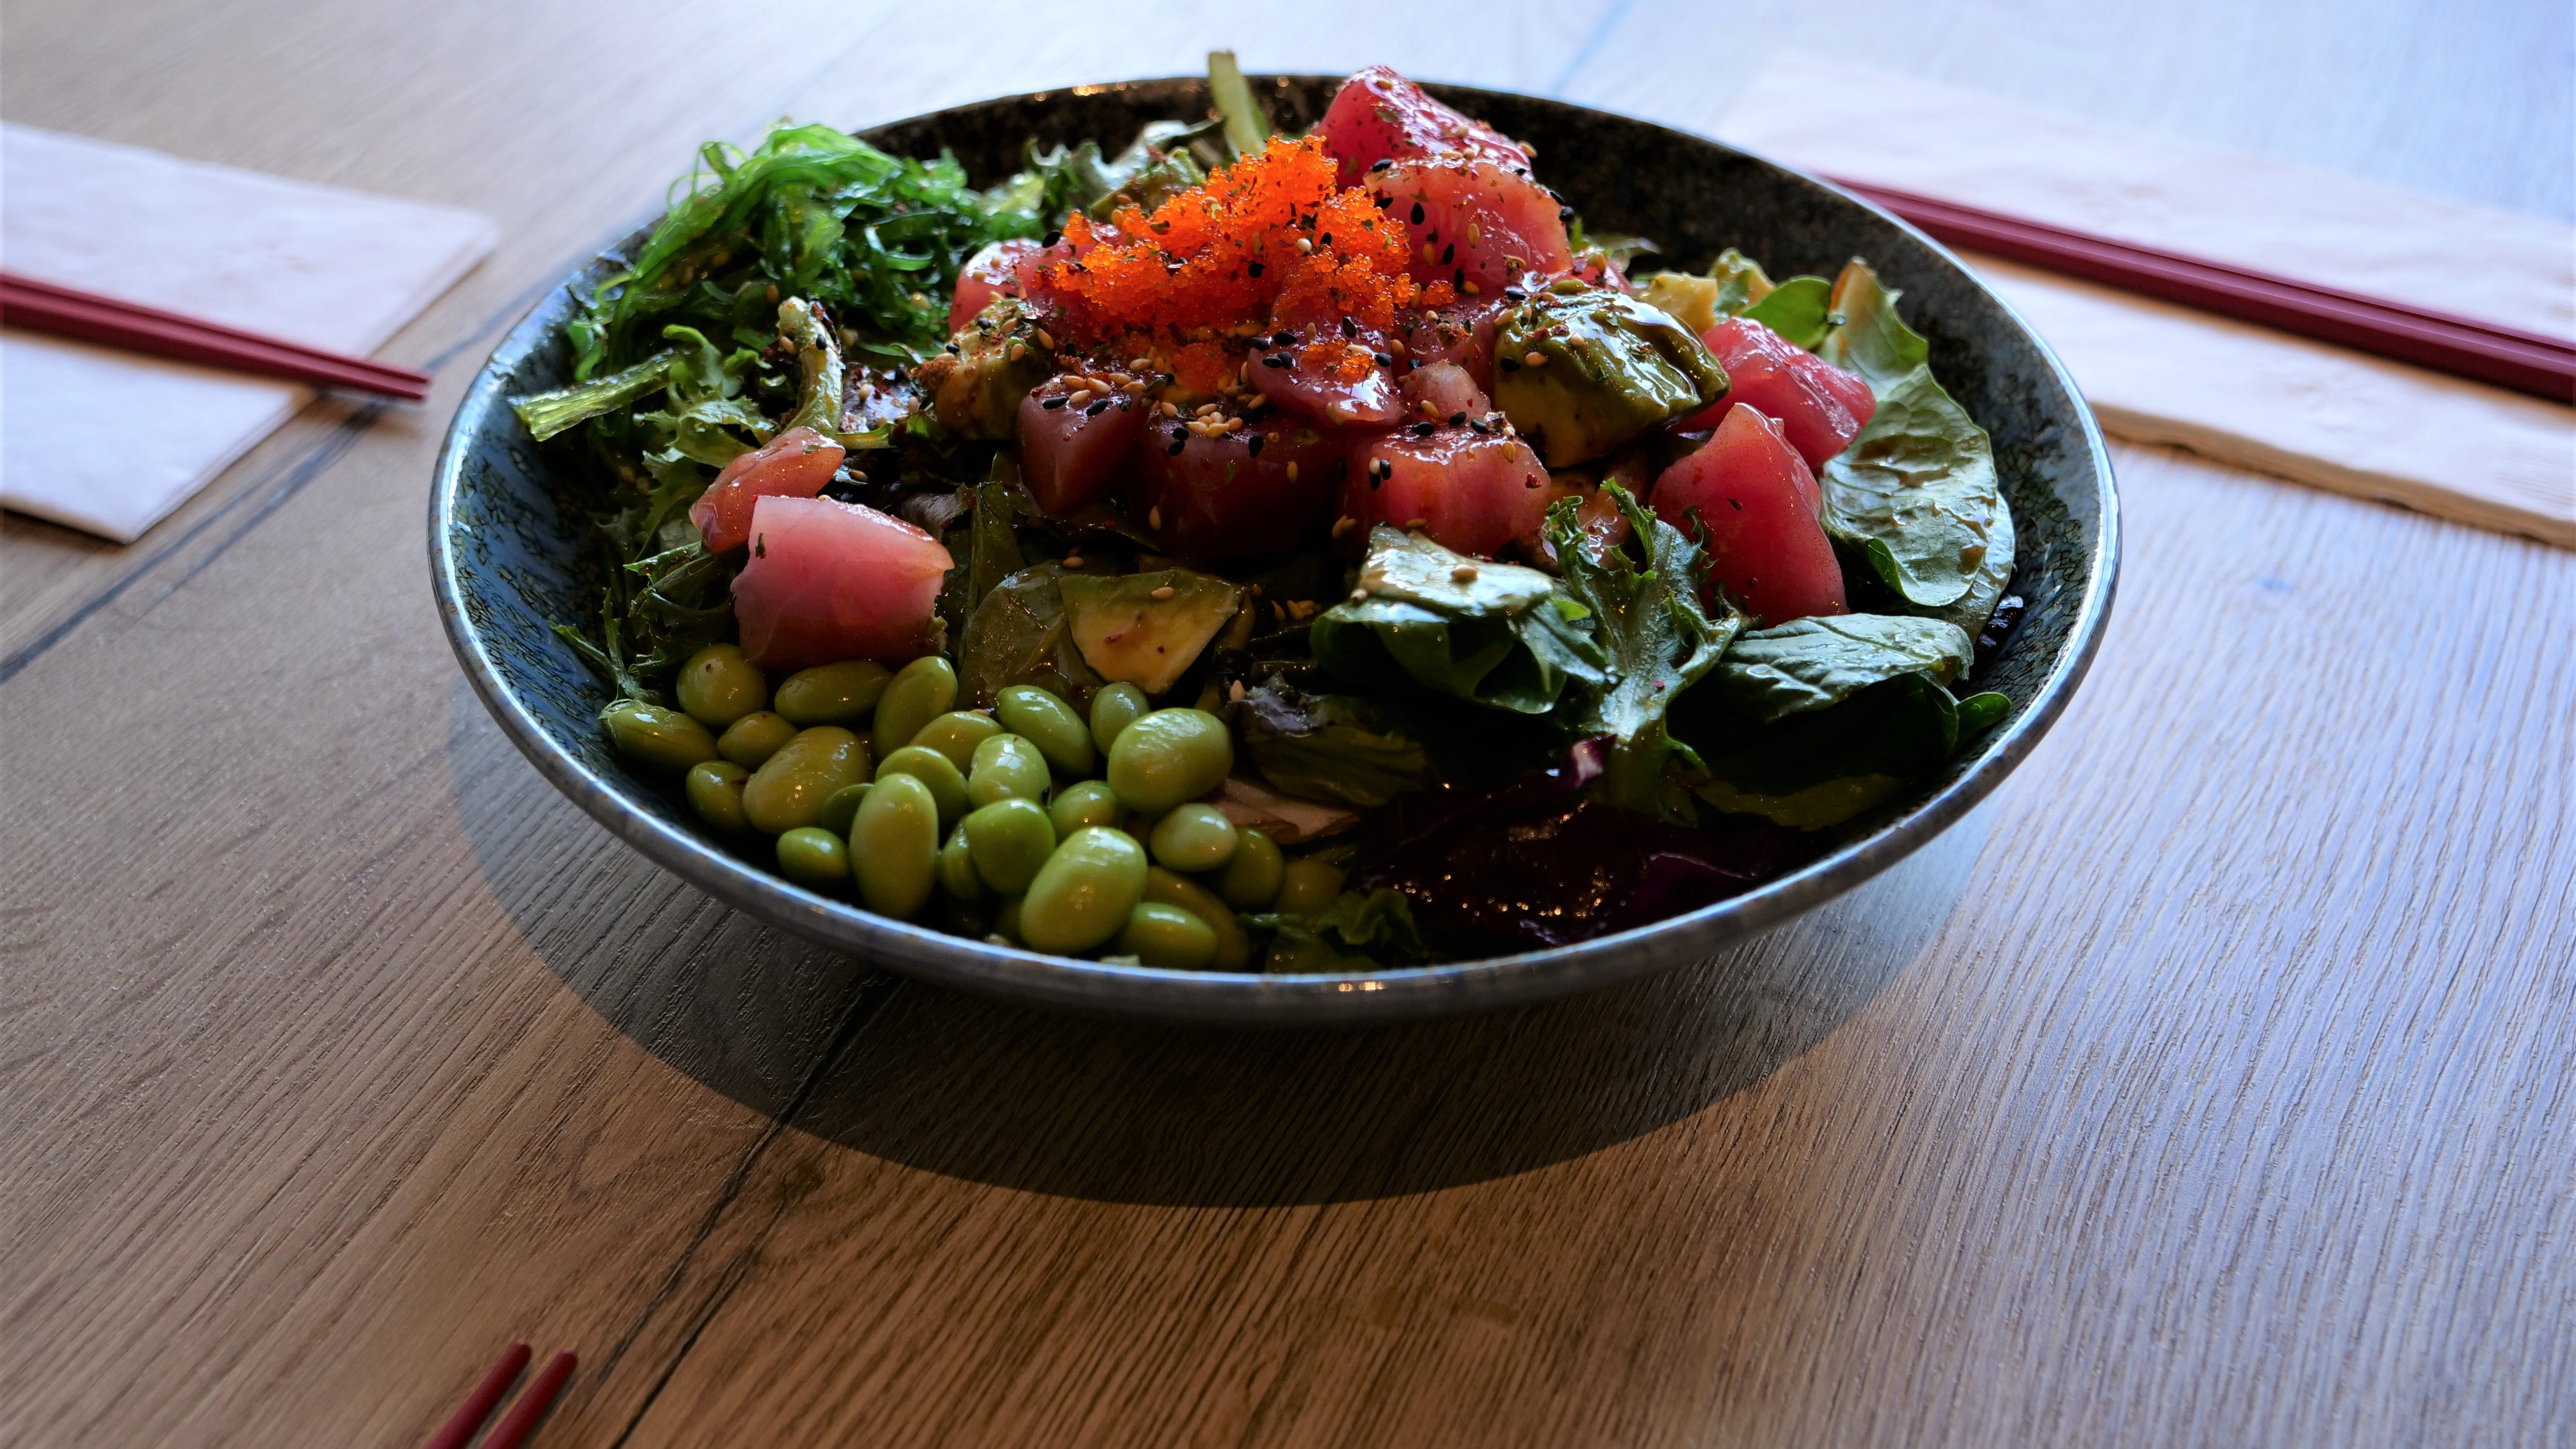 The ever-popular rice bowl is offered at Miyagi Ramen Bar in Rehoboth Beach, this one a vessel for perfectly raw tuna, roe, edamame, avocado and seaweed over poke-dressed greens.